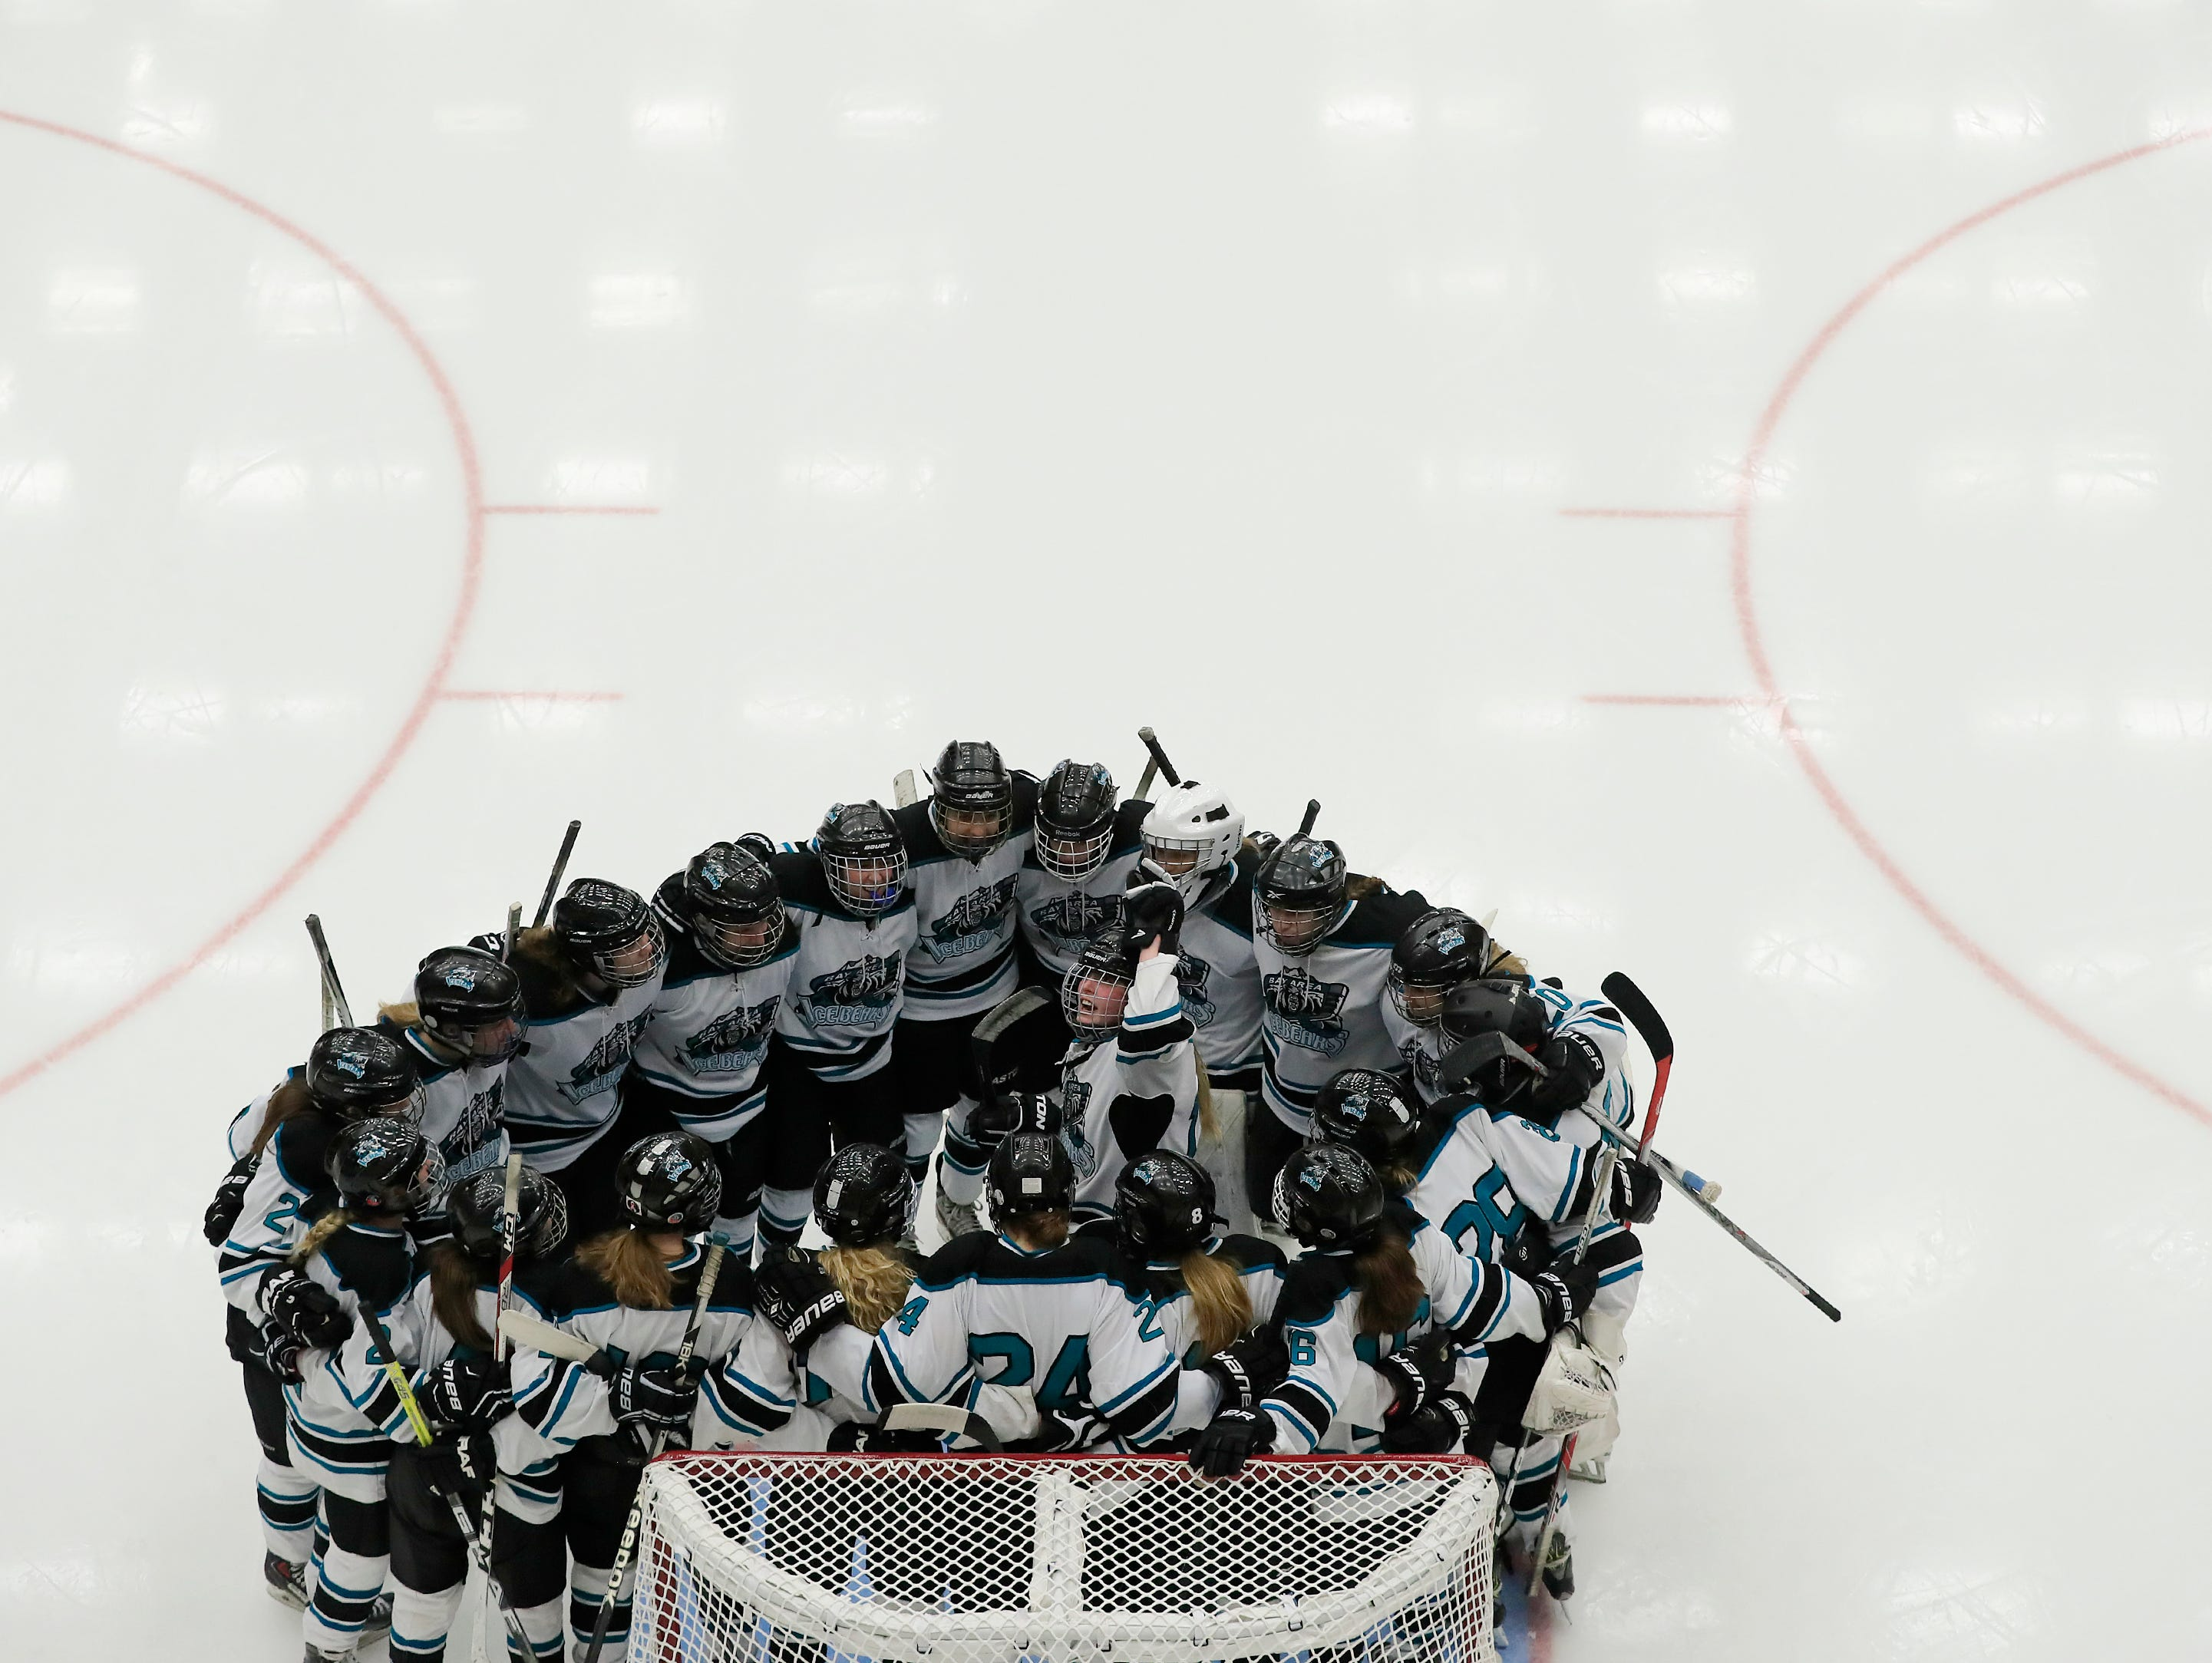 Bay Area Ice Bears forward Janelle Wotruba (13) pumps up her team before the championship match at the 2017 State Hockey Tournament at Veterans Memorial Coliseum on Saturday, March 4, 2017, in Madison, Wis. The Storm won the match 2-1 in overtime. Adam Wesley/USA TODAY NETWORK-Wisconsin